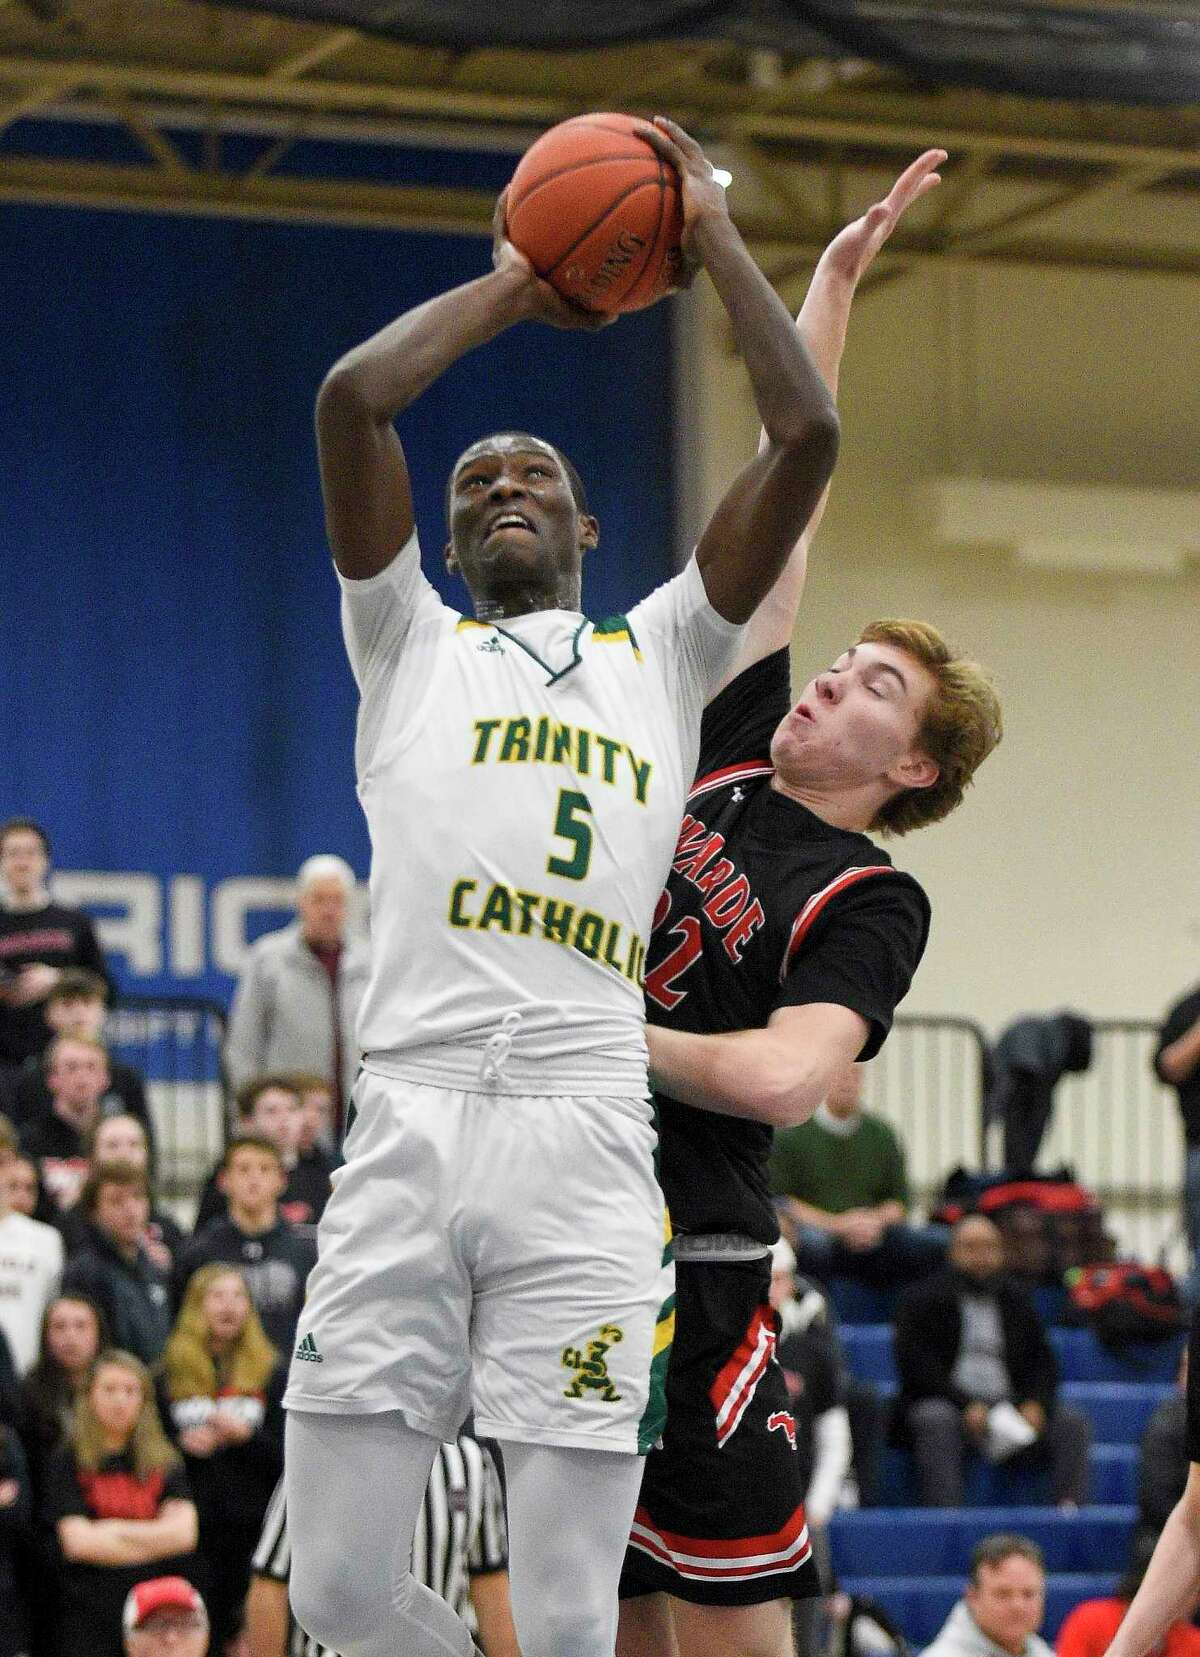 Trinity Catholic's Abdoul Rassoul AbakanHachym (5) puts up a shot under pressure from Fairfield Warde's Dennis Parker in the first half of Tuesday's FCIAC boys basketball semifinal game at Wilton High School.